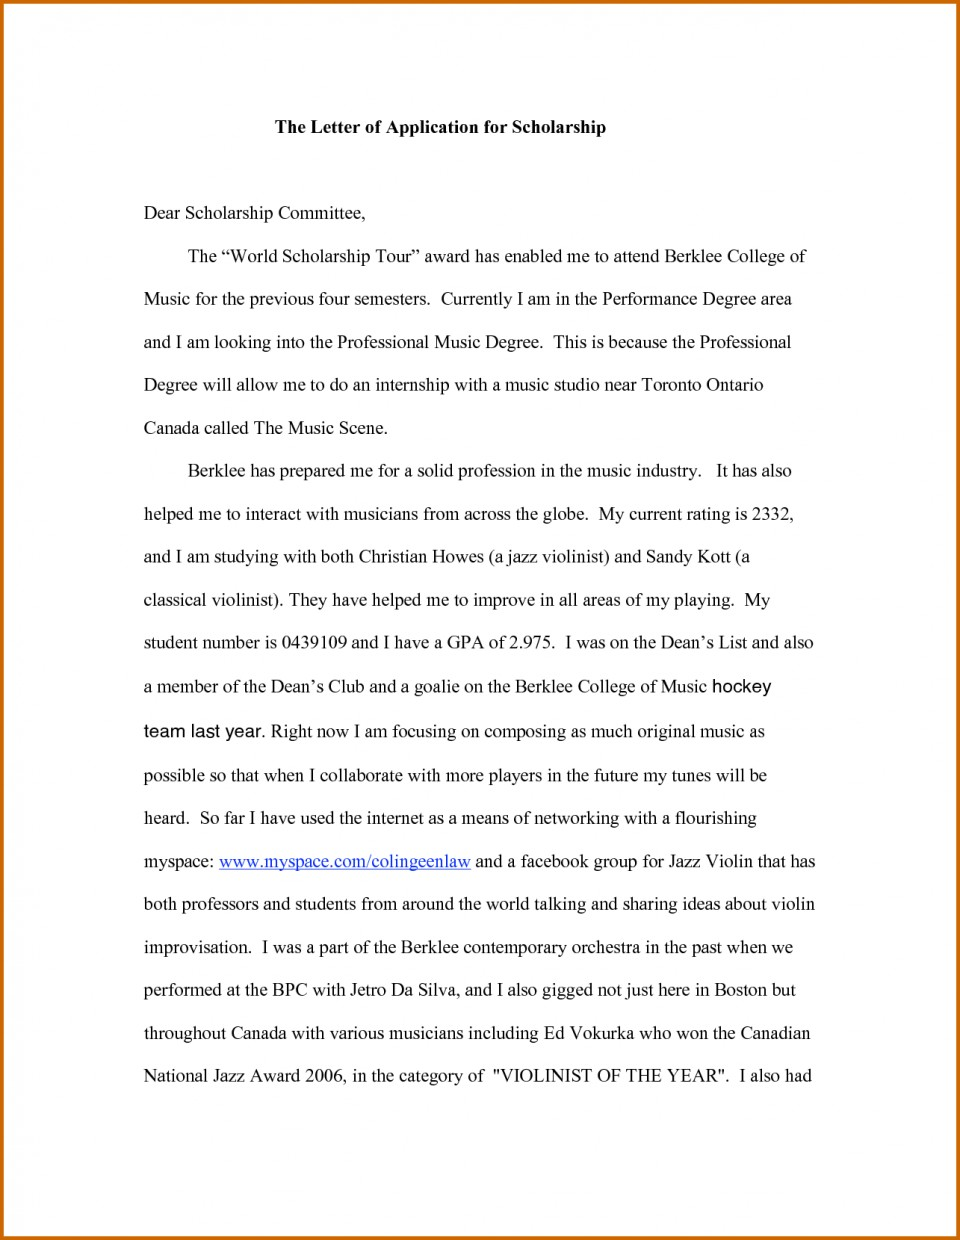 003 How To Write Application For Scholarship Sample Essays Essay Awful High School Seniors 500 Words 960